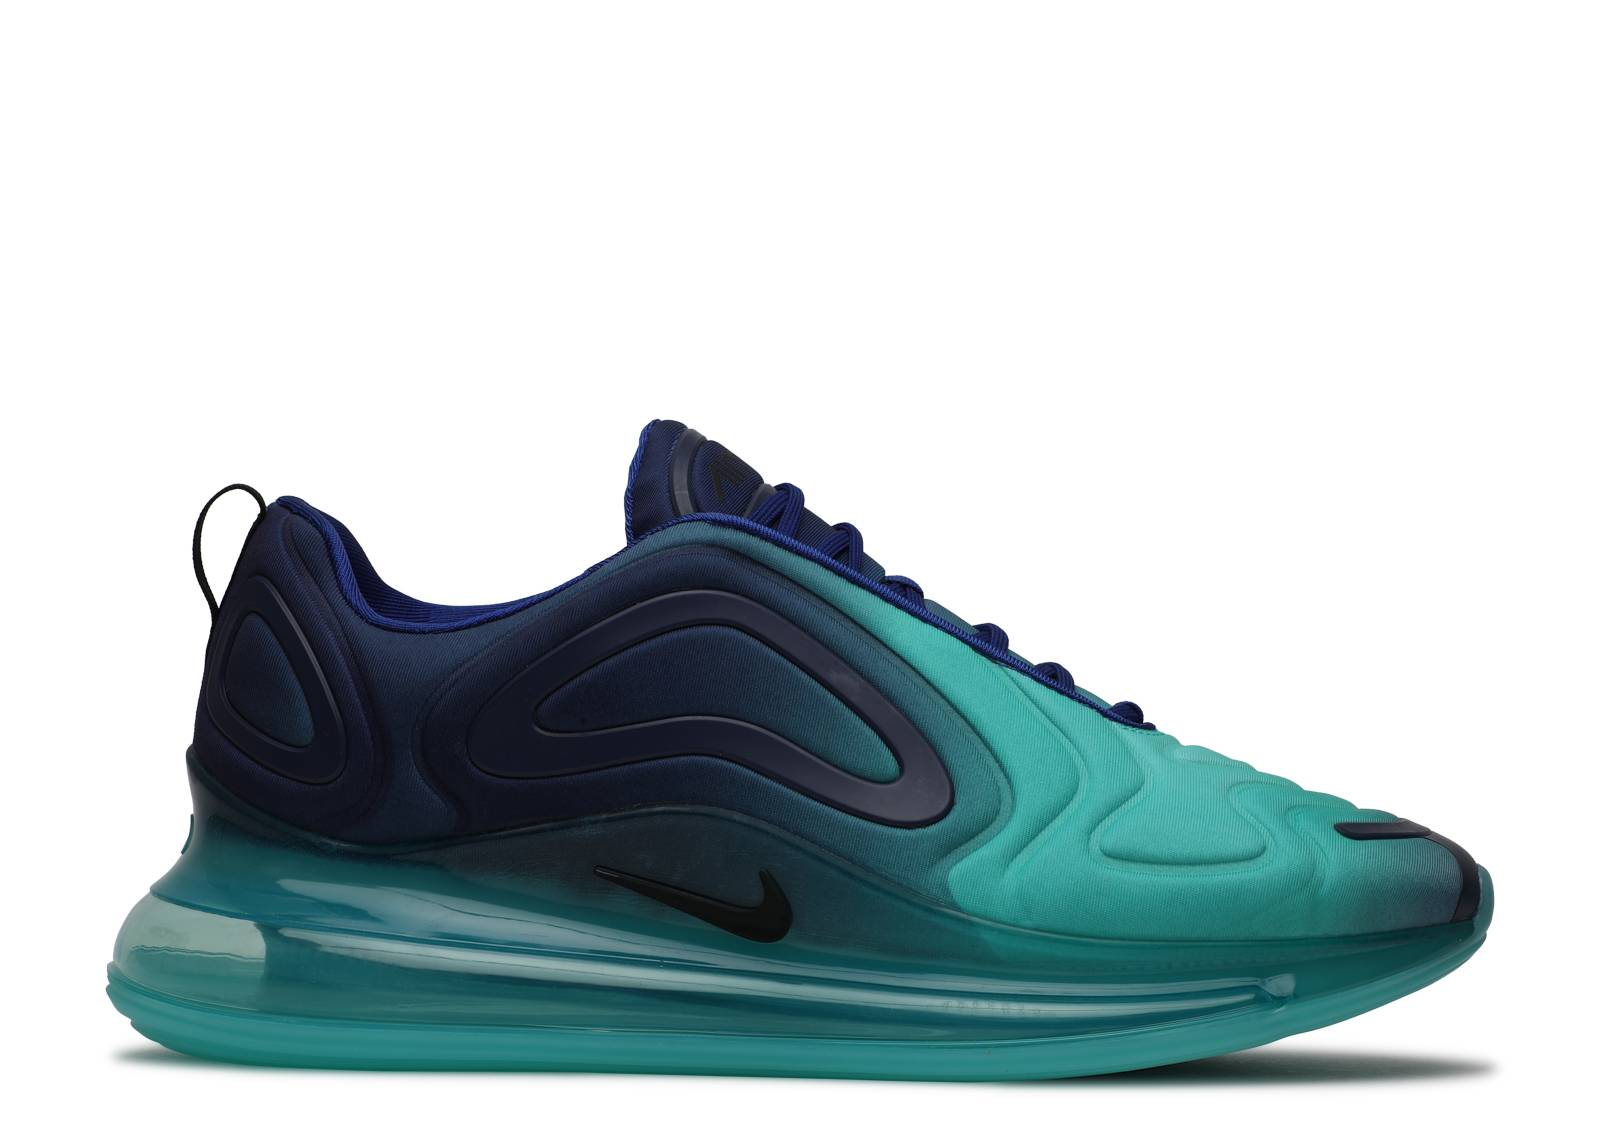 Nike W Air Max 720 Deep Royal Blue Black Hyper Jade | Footshop